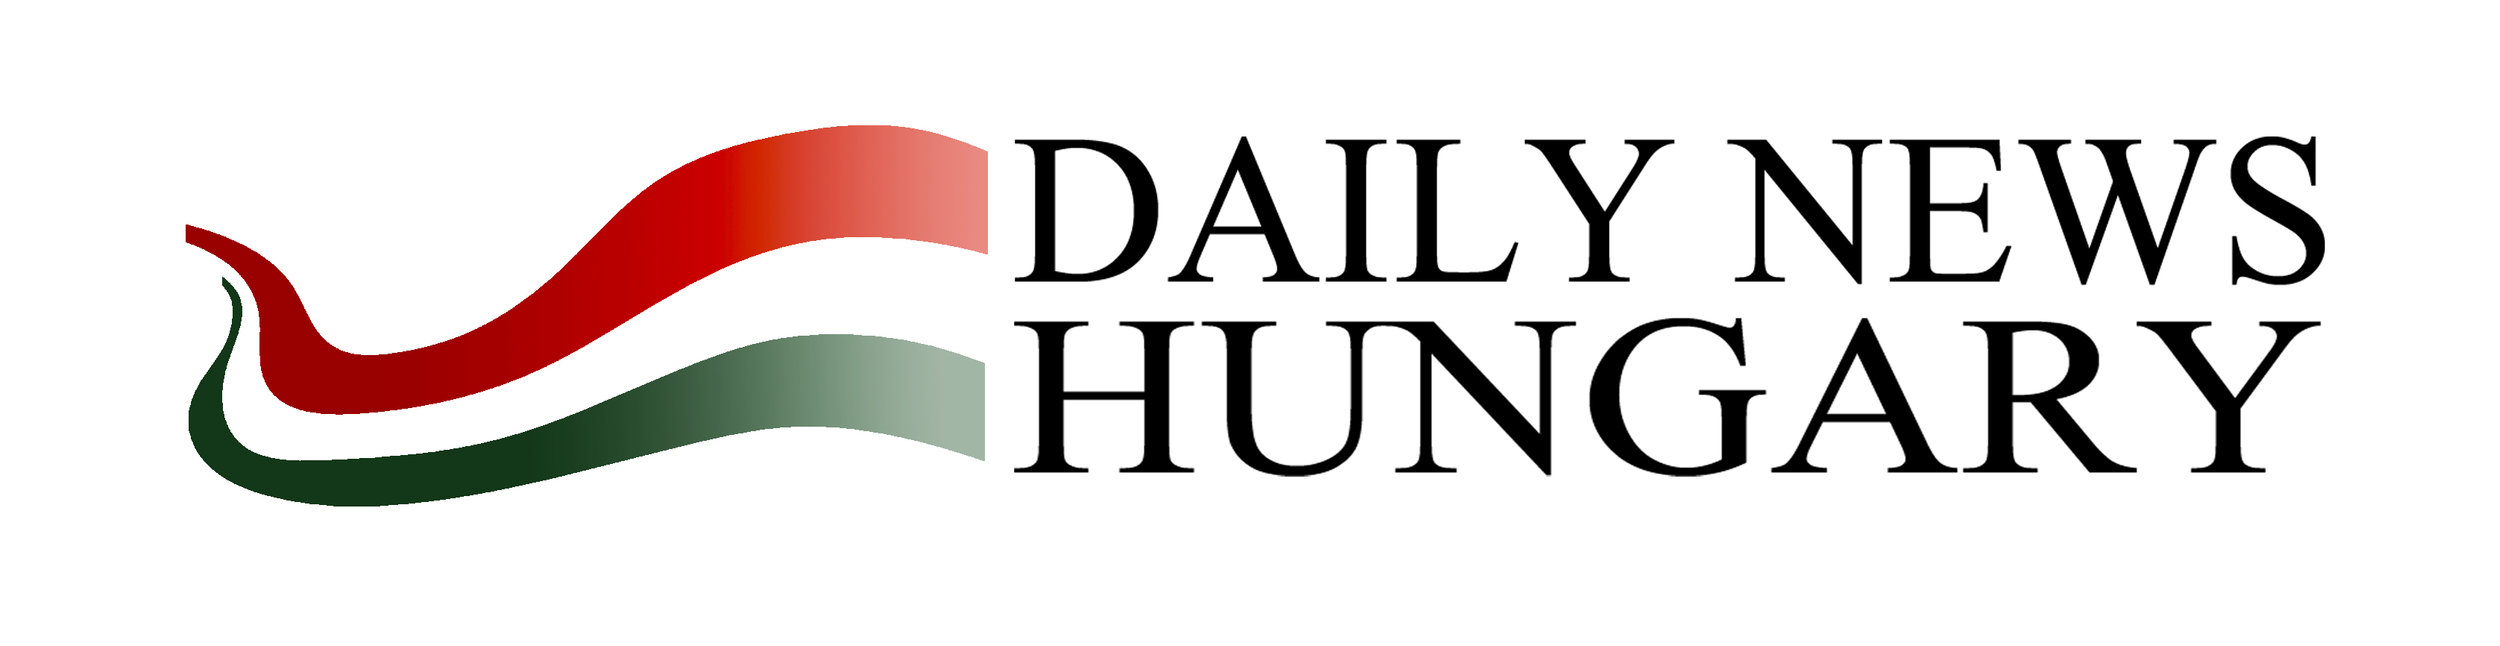 Daily-News-Hungary-logo-2.jpg